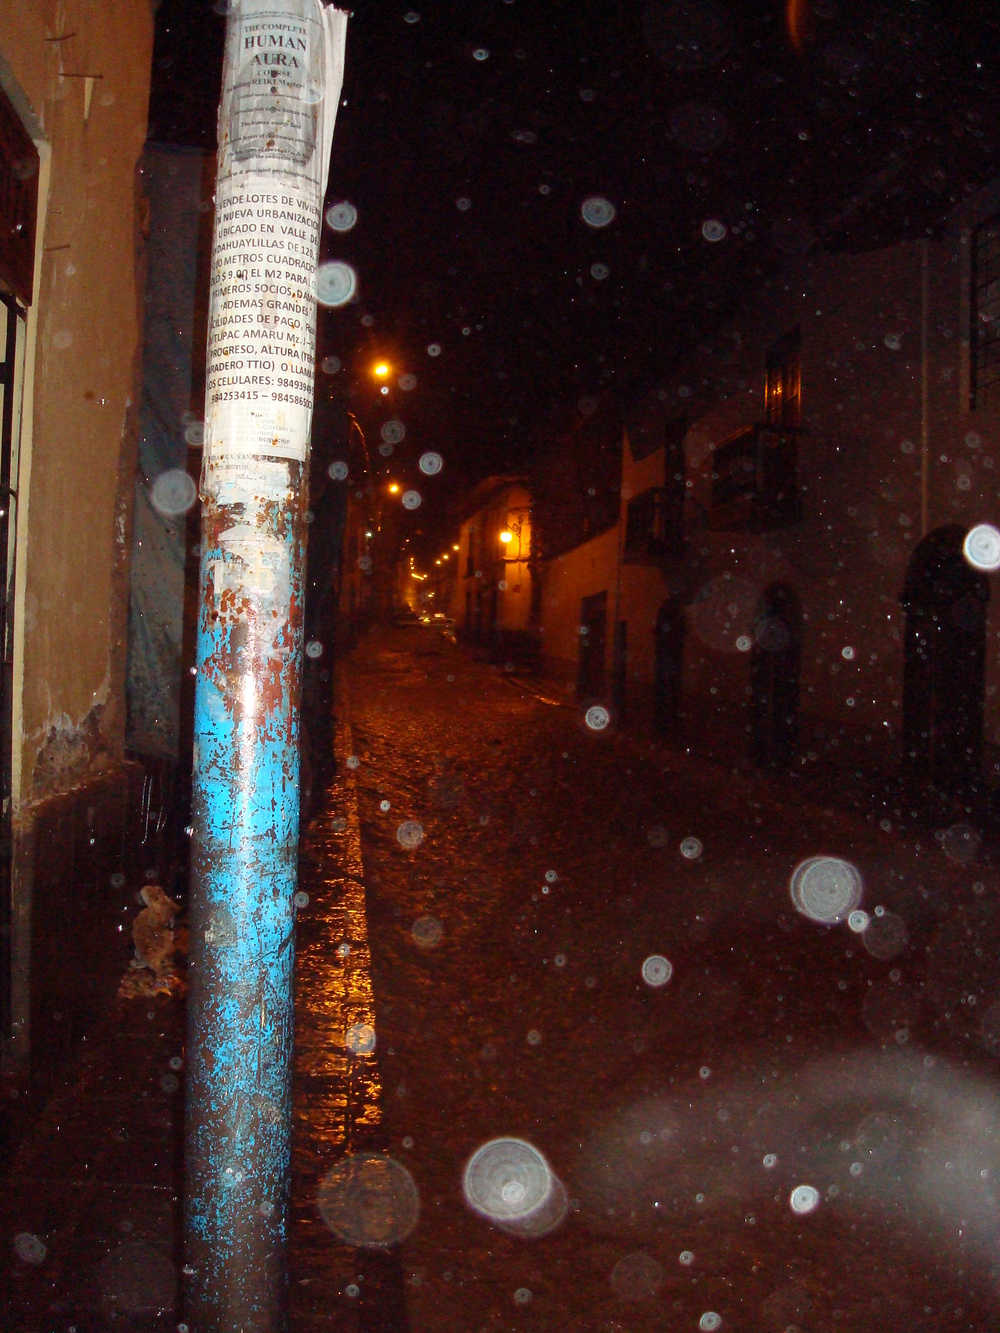 A photo taken by Ami while were both still living down in Cusco Peru during my travel experience of my Jaunt Down South 2010. It showcases how during the rainy season in Cusco Peru, the rain really pours down and the streets turn to rivers. During the peak of the rainy season (i.e. December to February) it can have an average of 133.9 inches receiving 401.7 inches of precipitation of the expected annual 707.8 inches per year in just those three months. Read the Wikipedia Article for more information regarding Cusco's climate.